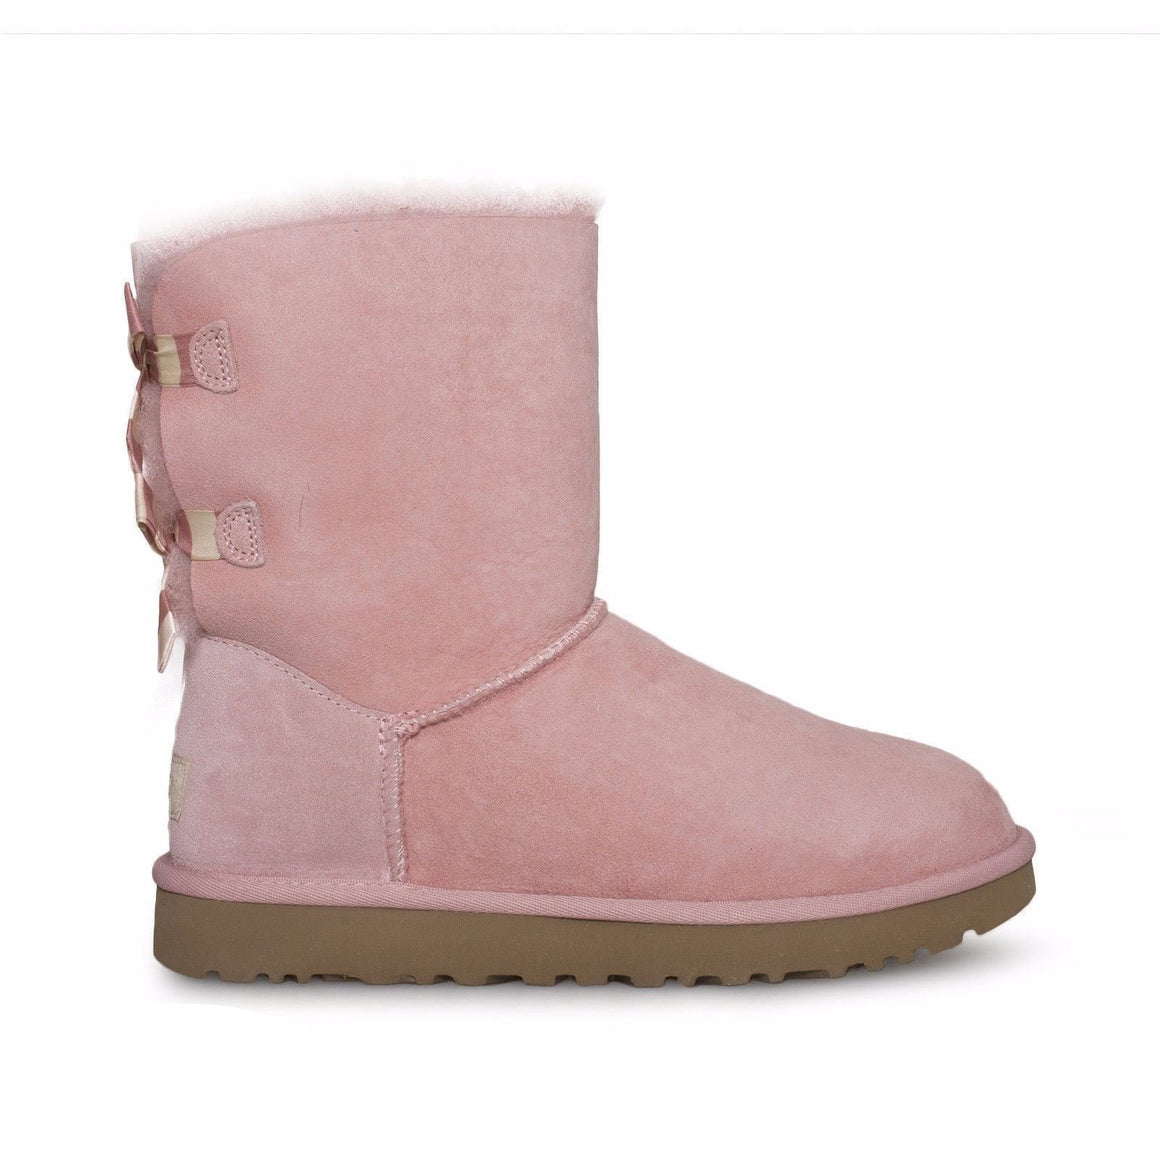 UGG Bailey Bow Stripe Blush Pink Boots